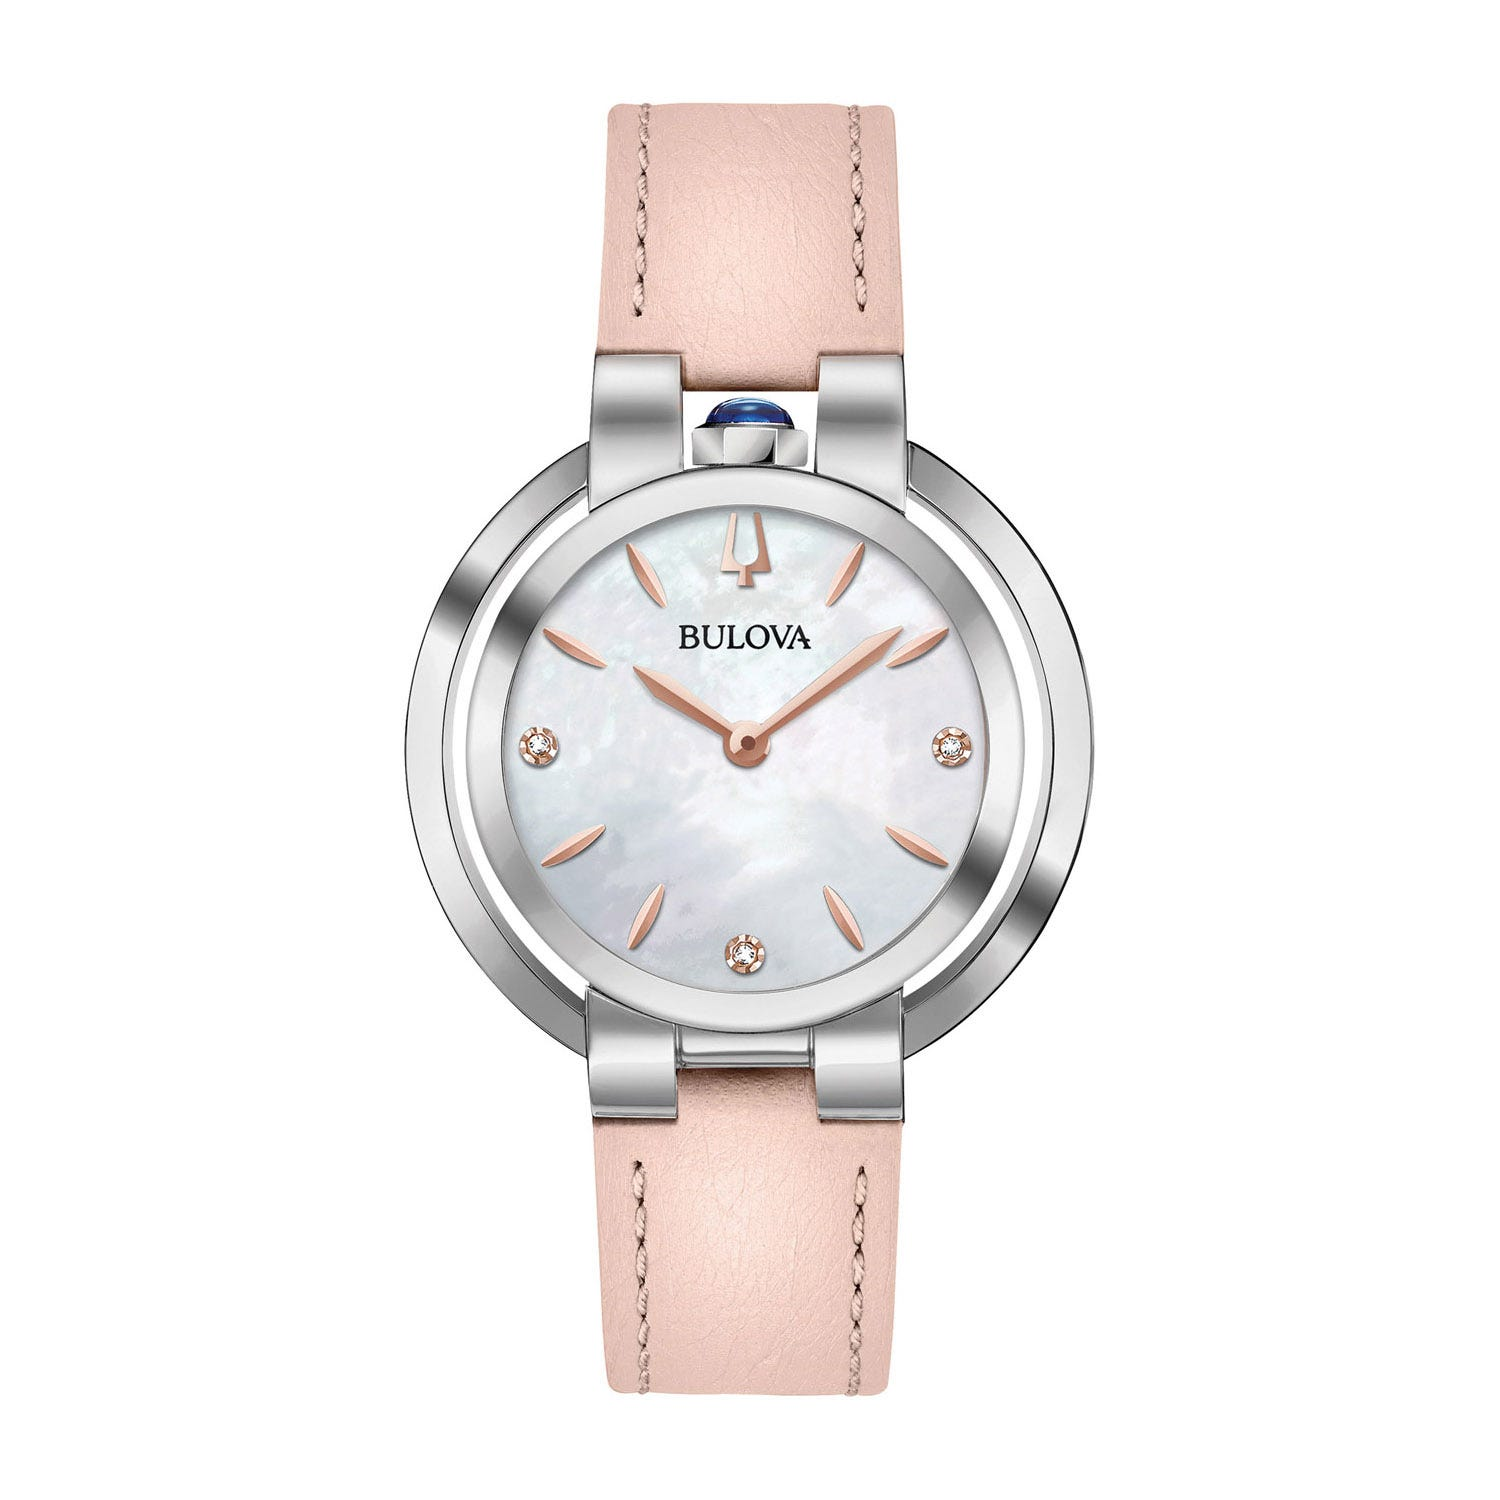 Bulova Diamond & Pearl Pink Leather 35mm Ladies' Watch